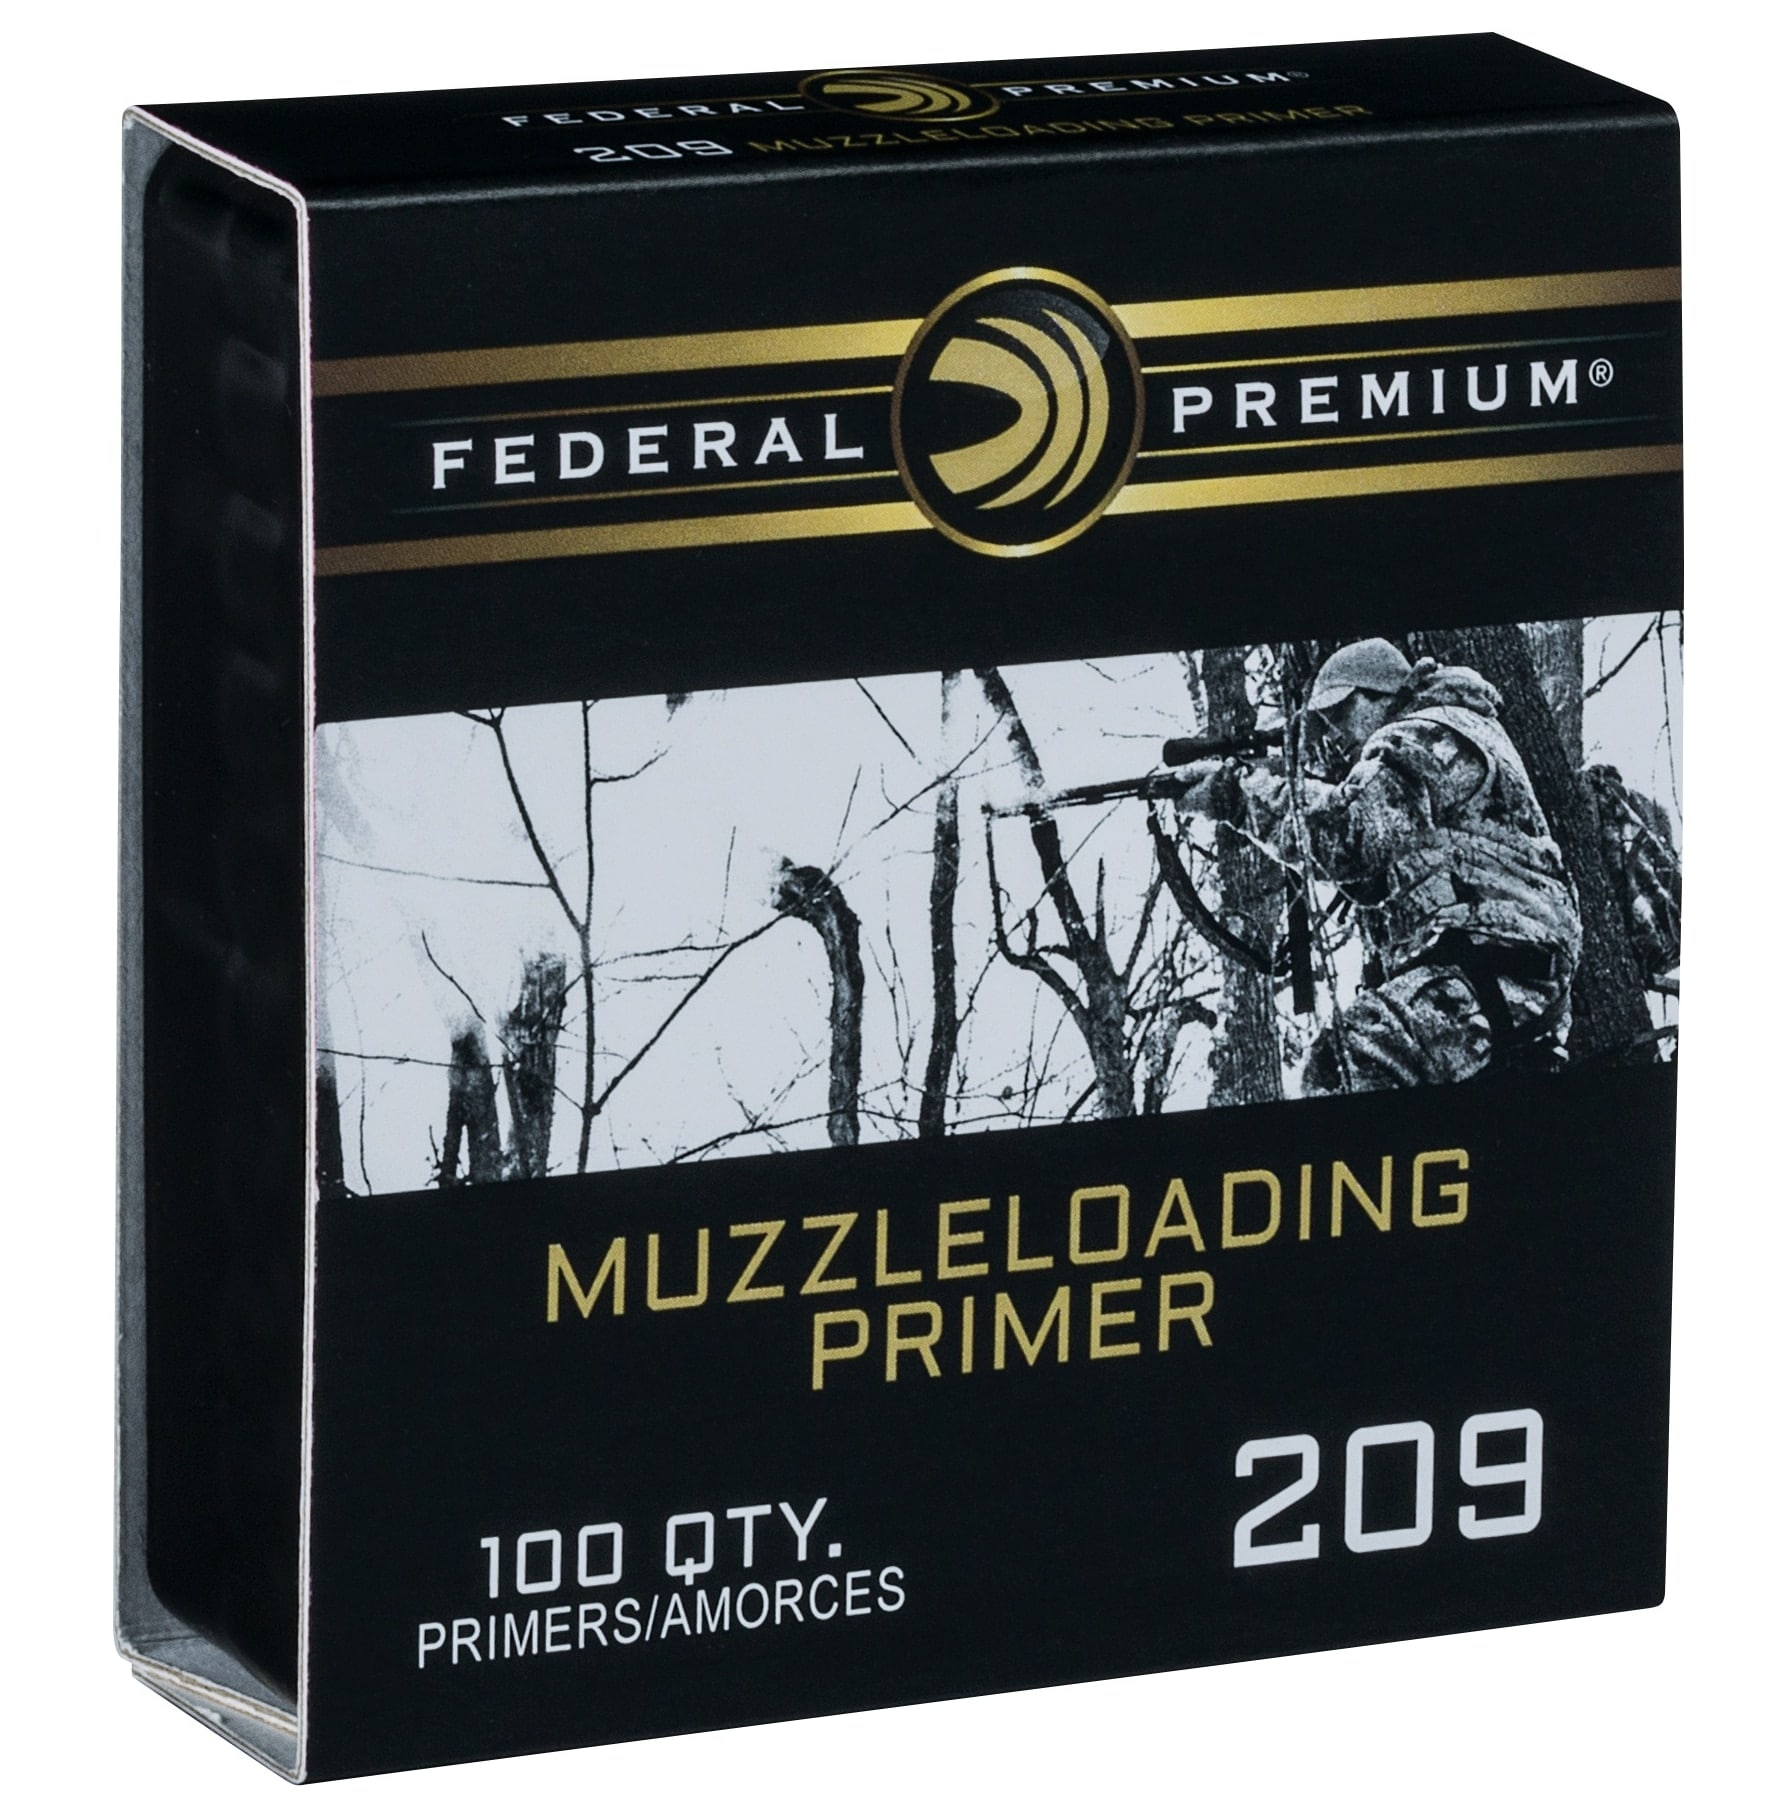 The new 209 Muzzleloading Primer is one of the newer products released by Federal Premium Ammunition in 2017. (Photo: Federal Premium)